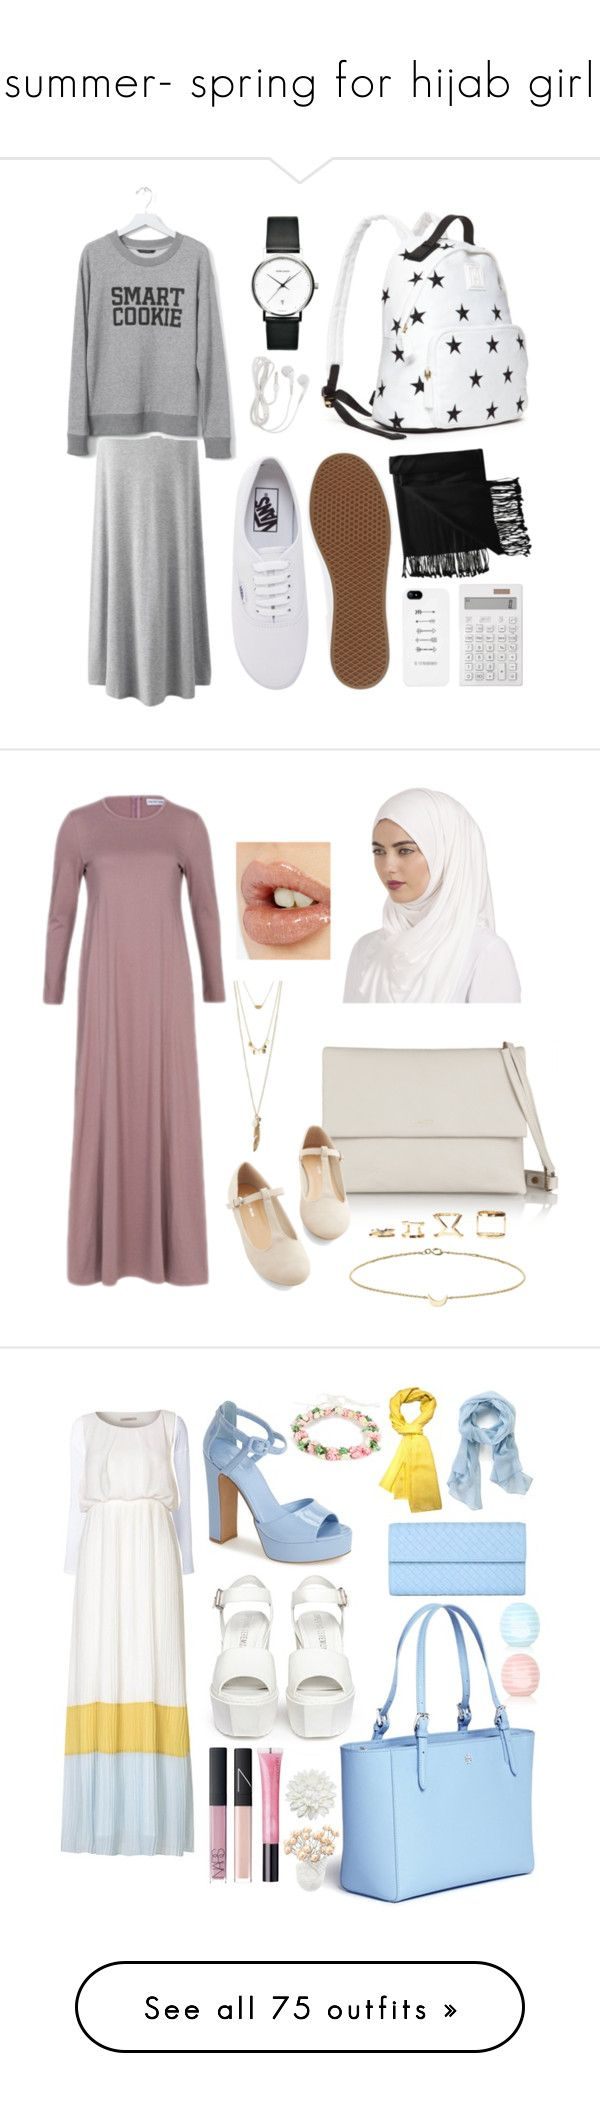 """summer- spring for hijab girl"" by rasheel ❤ liked on Polyvore featuring girl, muslim, hijab, muslimah, hijabi, Banana Republic, New Directions, Tommy Hilfiger, Vans and Muji"